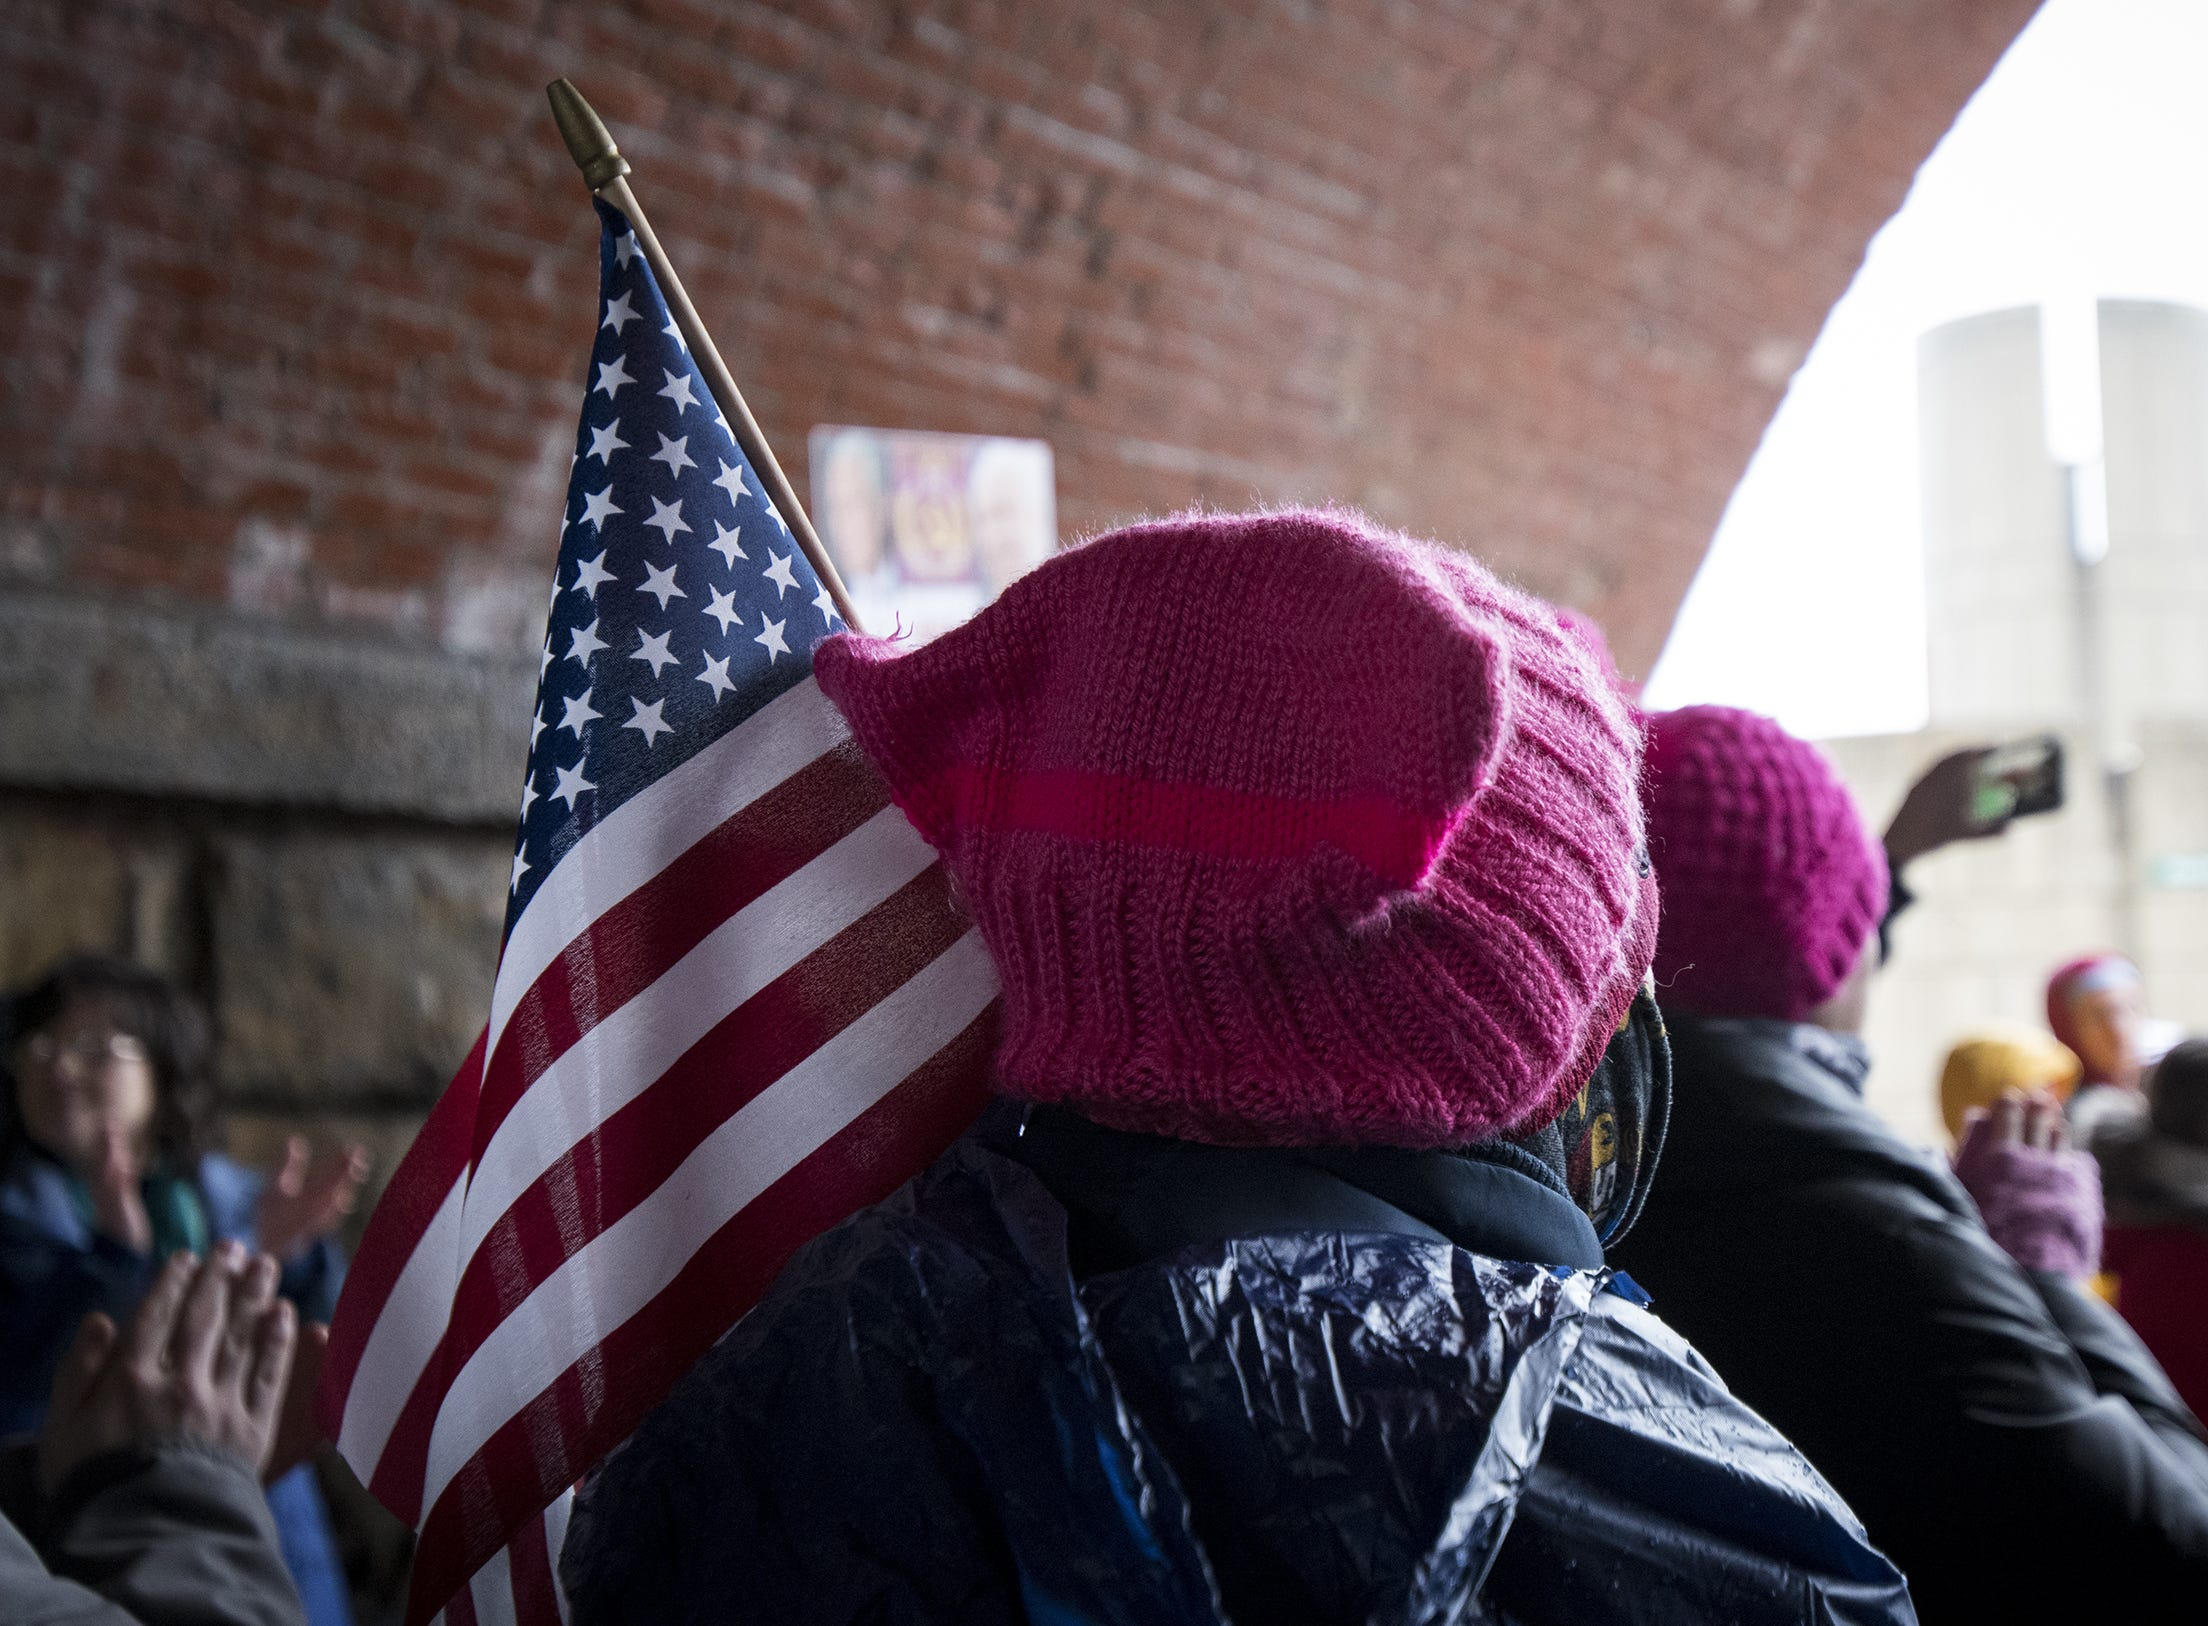 Demonstrators gather at Sawyer Point Park for the 2019 Women's March organized by the Cincinnati chapters of Socialist Alternative, Democratic Socialists of America and the International Socialist Organization Saturday, January 19, 2019 in Cincinnati, Ohio.